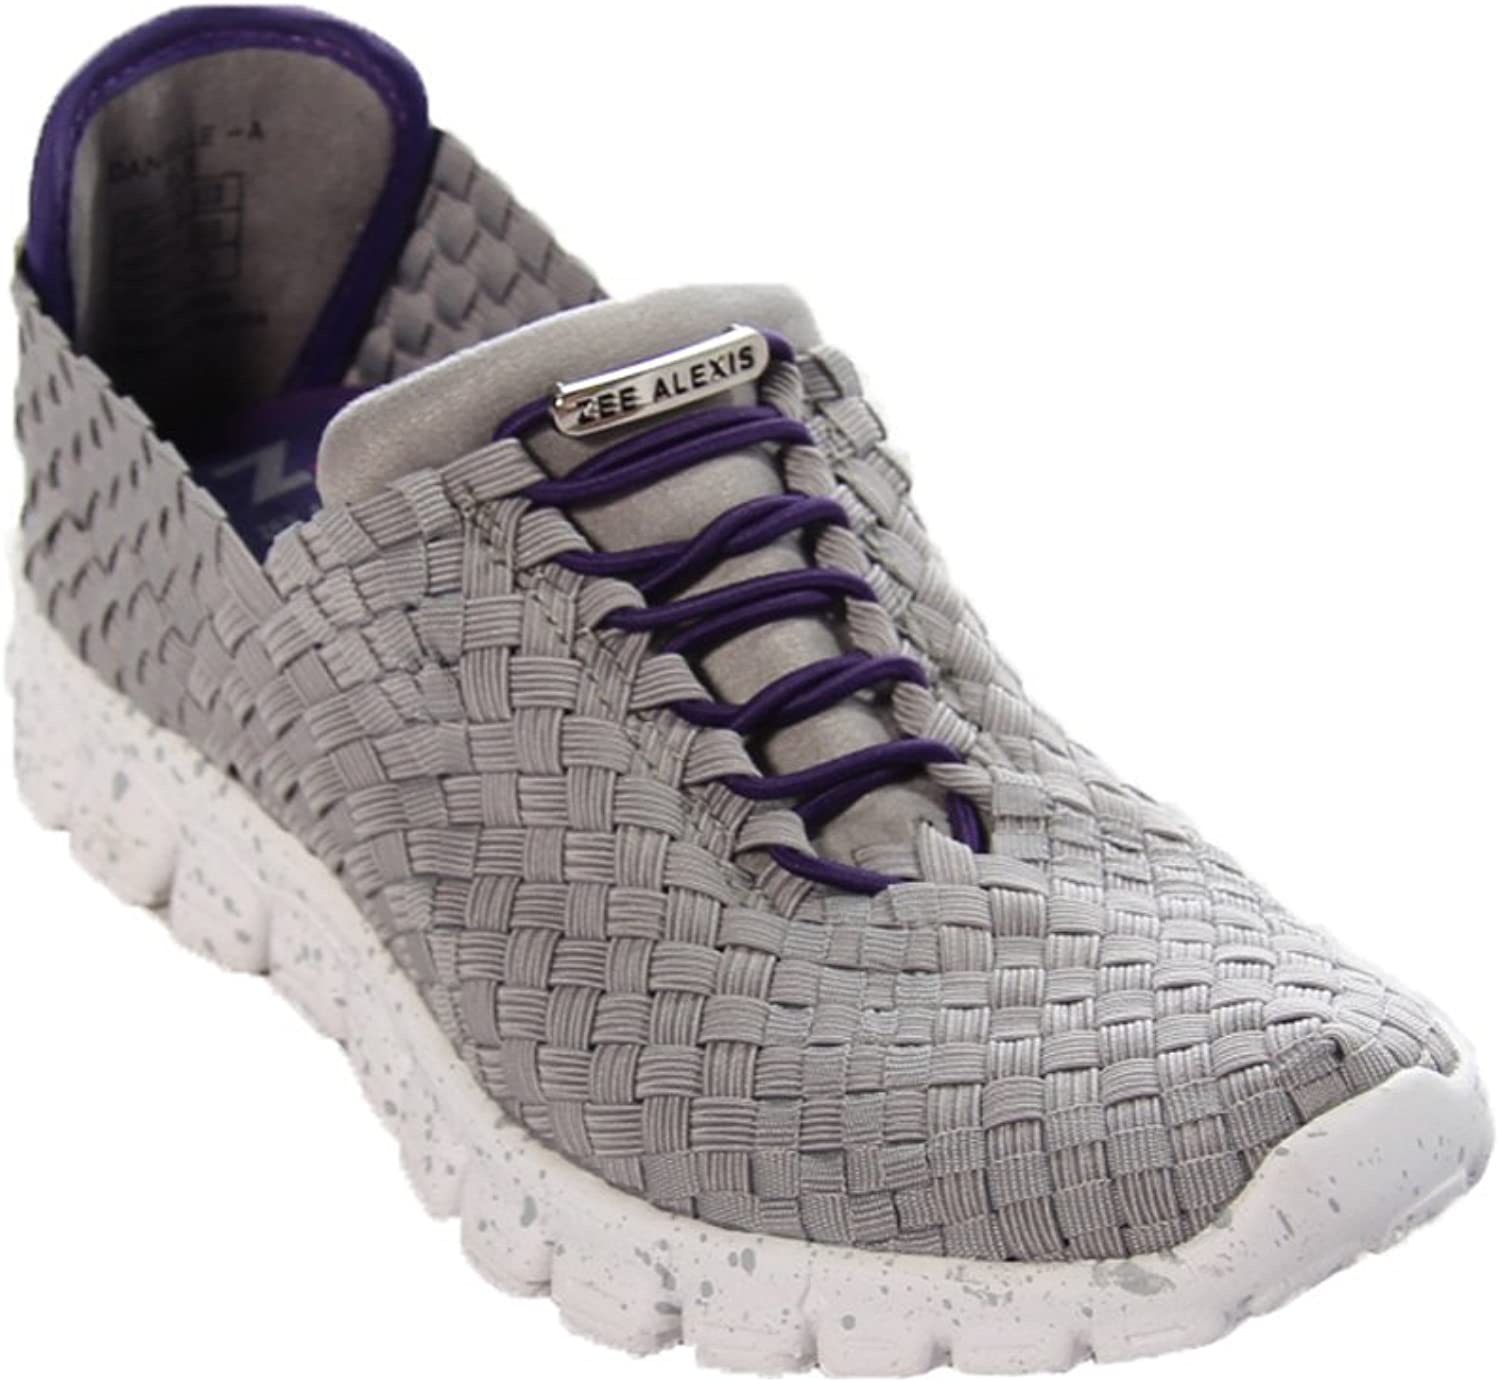 Zee Alexis Danielle in Grey with Purple Trim